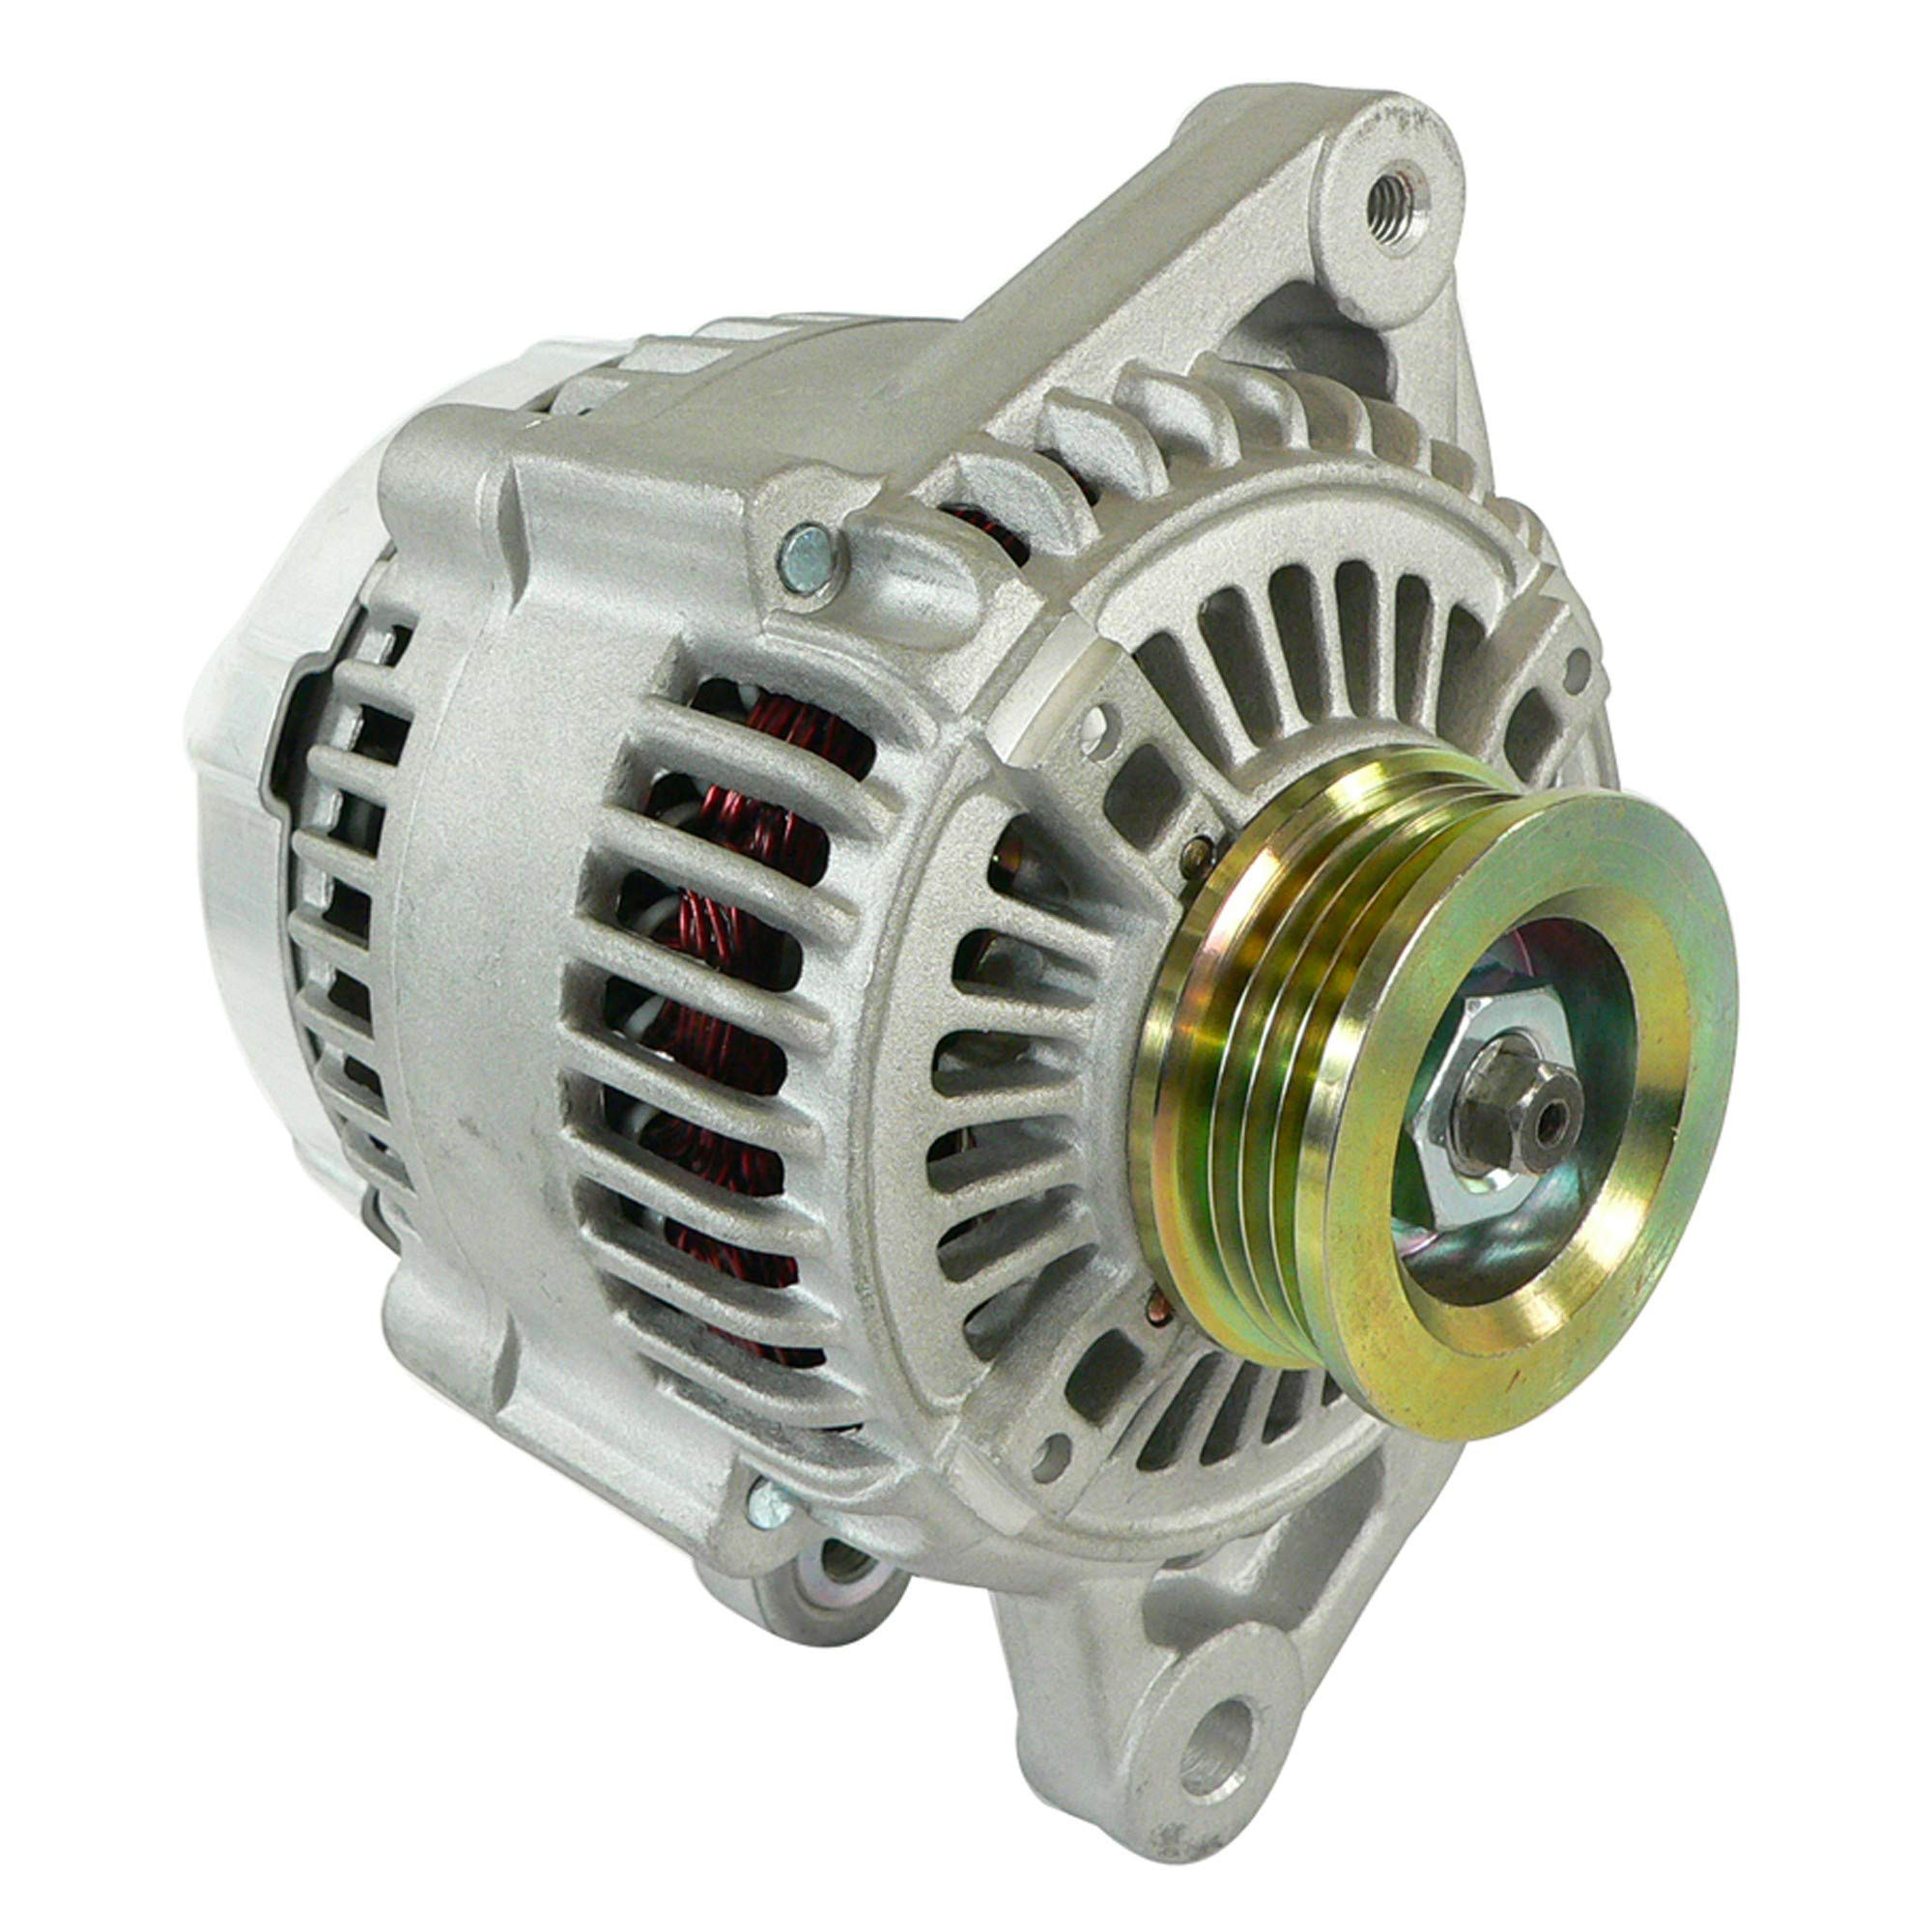 DB Electrical AND0333 Alternator Compatible With/Replacement For 1.5L Scion Xb 2003 2004 2005 2006, Toyota Echo 2004 2005 1.5L 102211-1950 102211-1951 102211-9070 27060-21030 1-3018-01ND